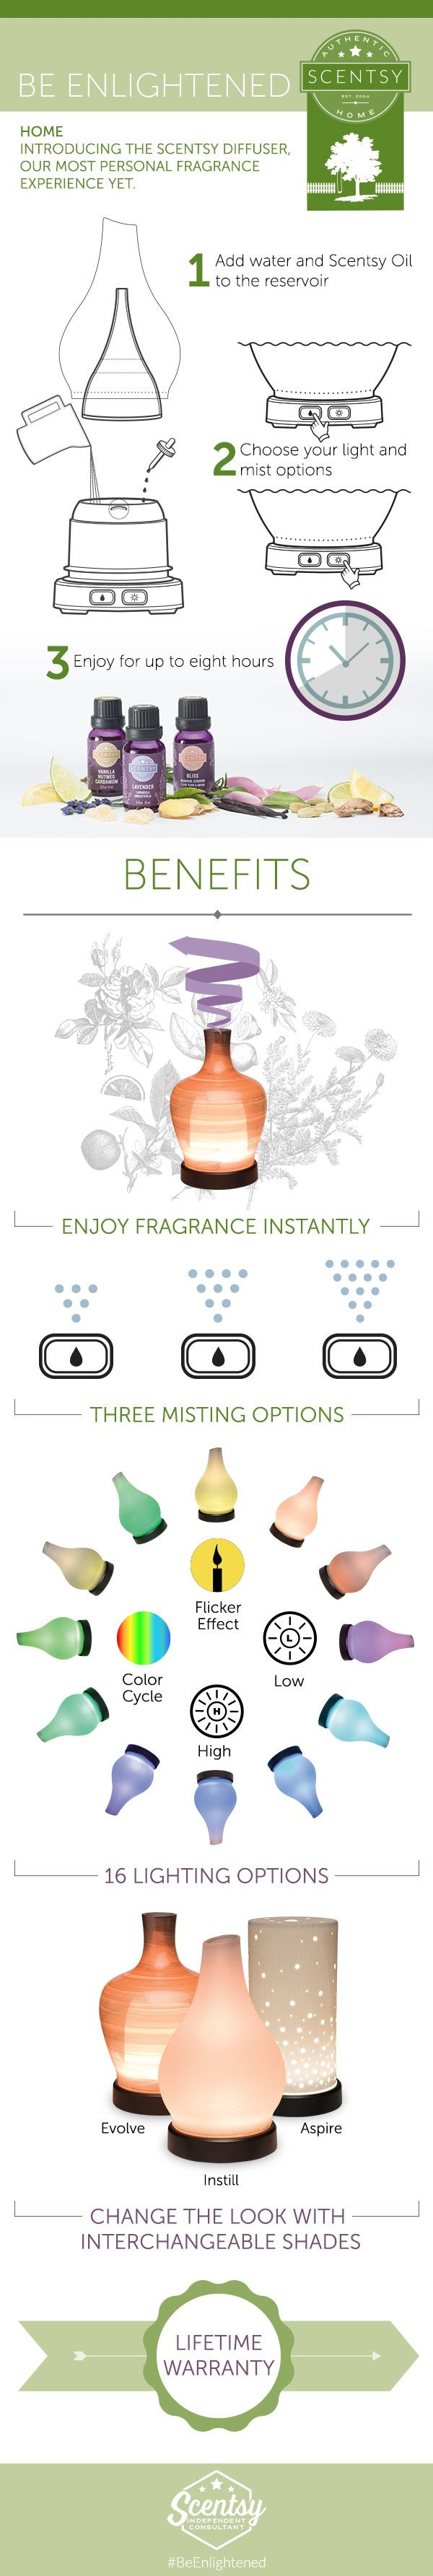 how to clean a essential oil diffusers with vinegar